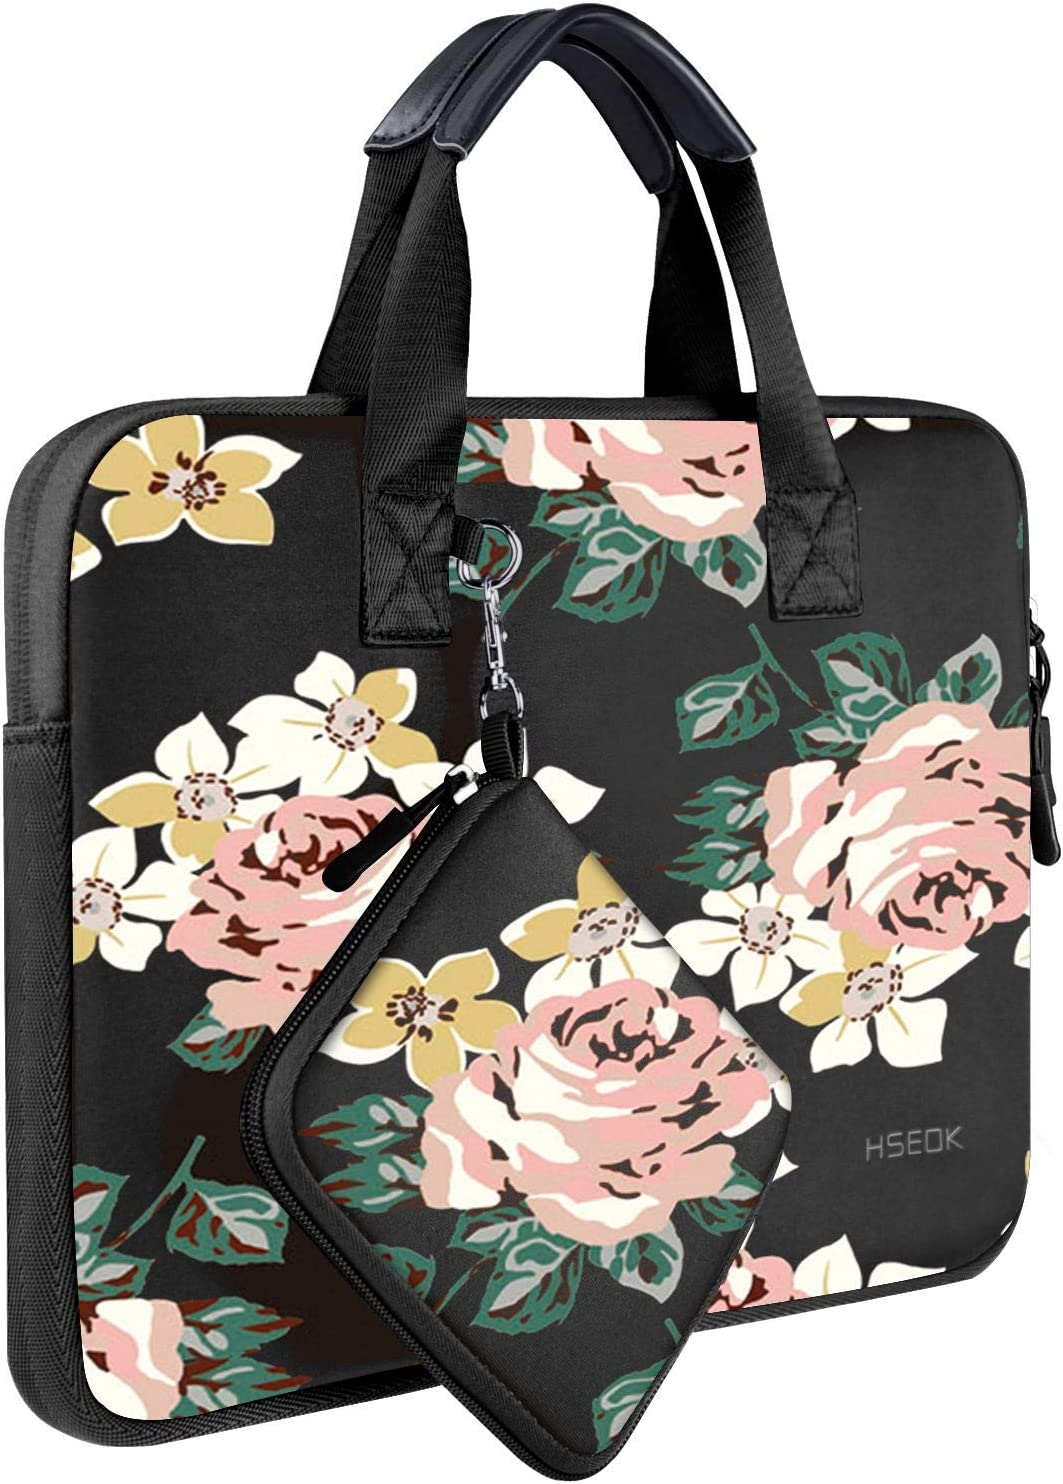 """Laptop Sleeve 13 13.3 13.5 Inch Case for MacBook Air Pro 13""""-13.3"""", Surface Laptop 13.5"""", Water Repellent Elastic Neoprene Notebooks Hand Bag with Handle and Small Case, Black Rose"""